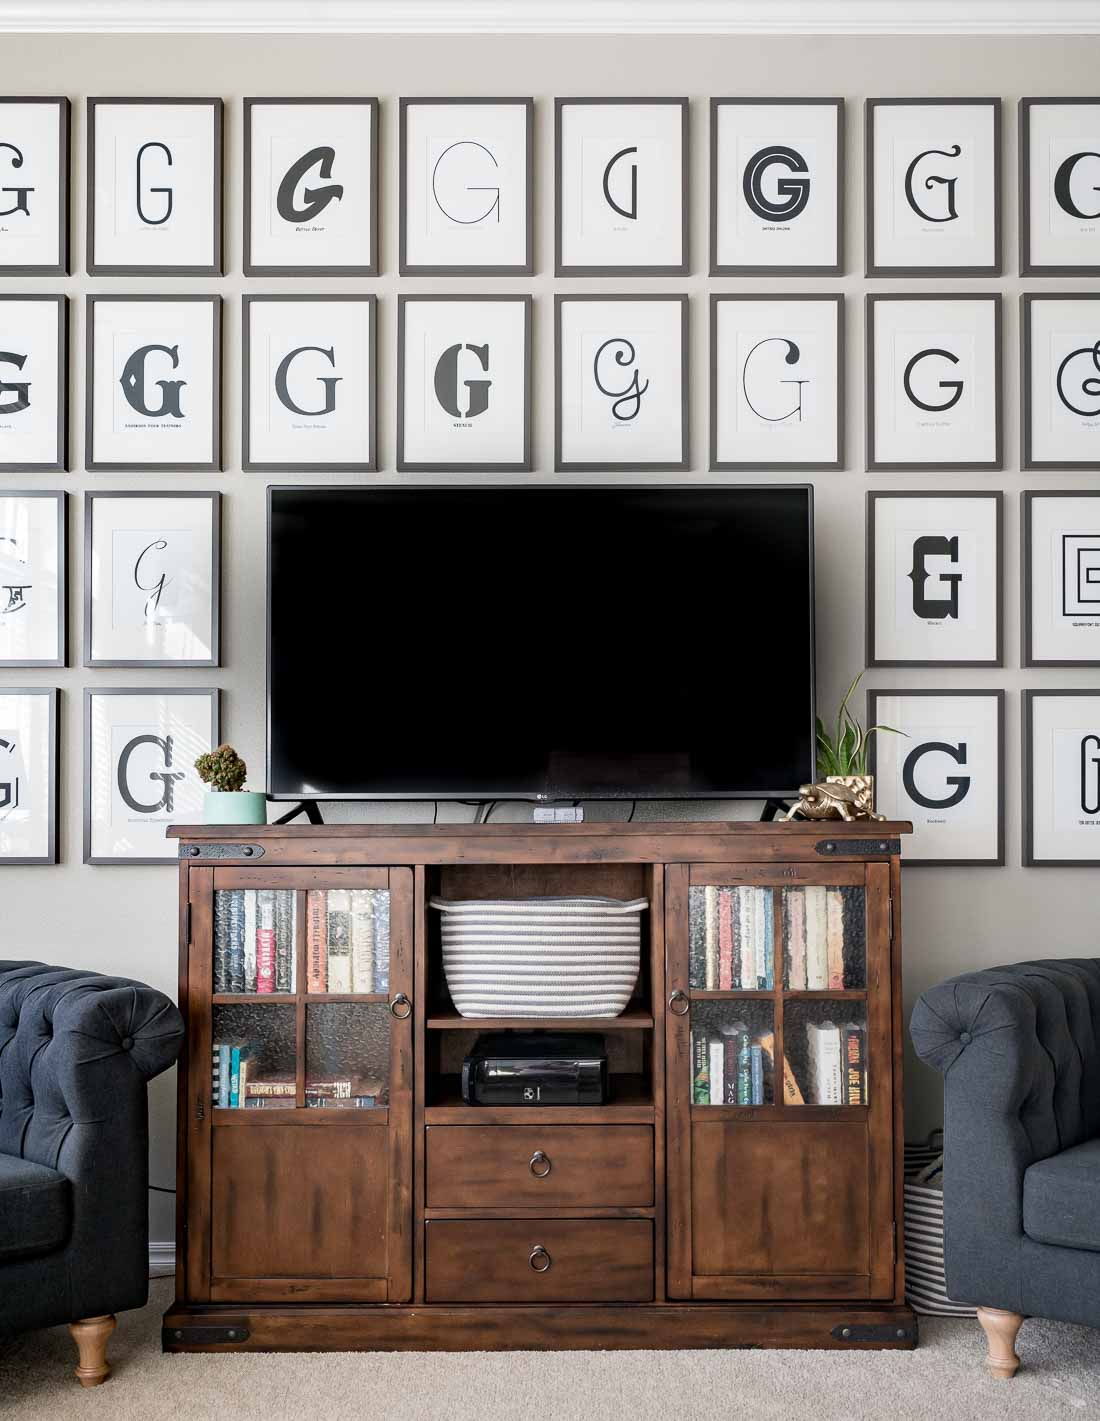 TV on wood console surrounded by typography G art